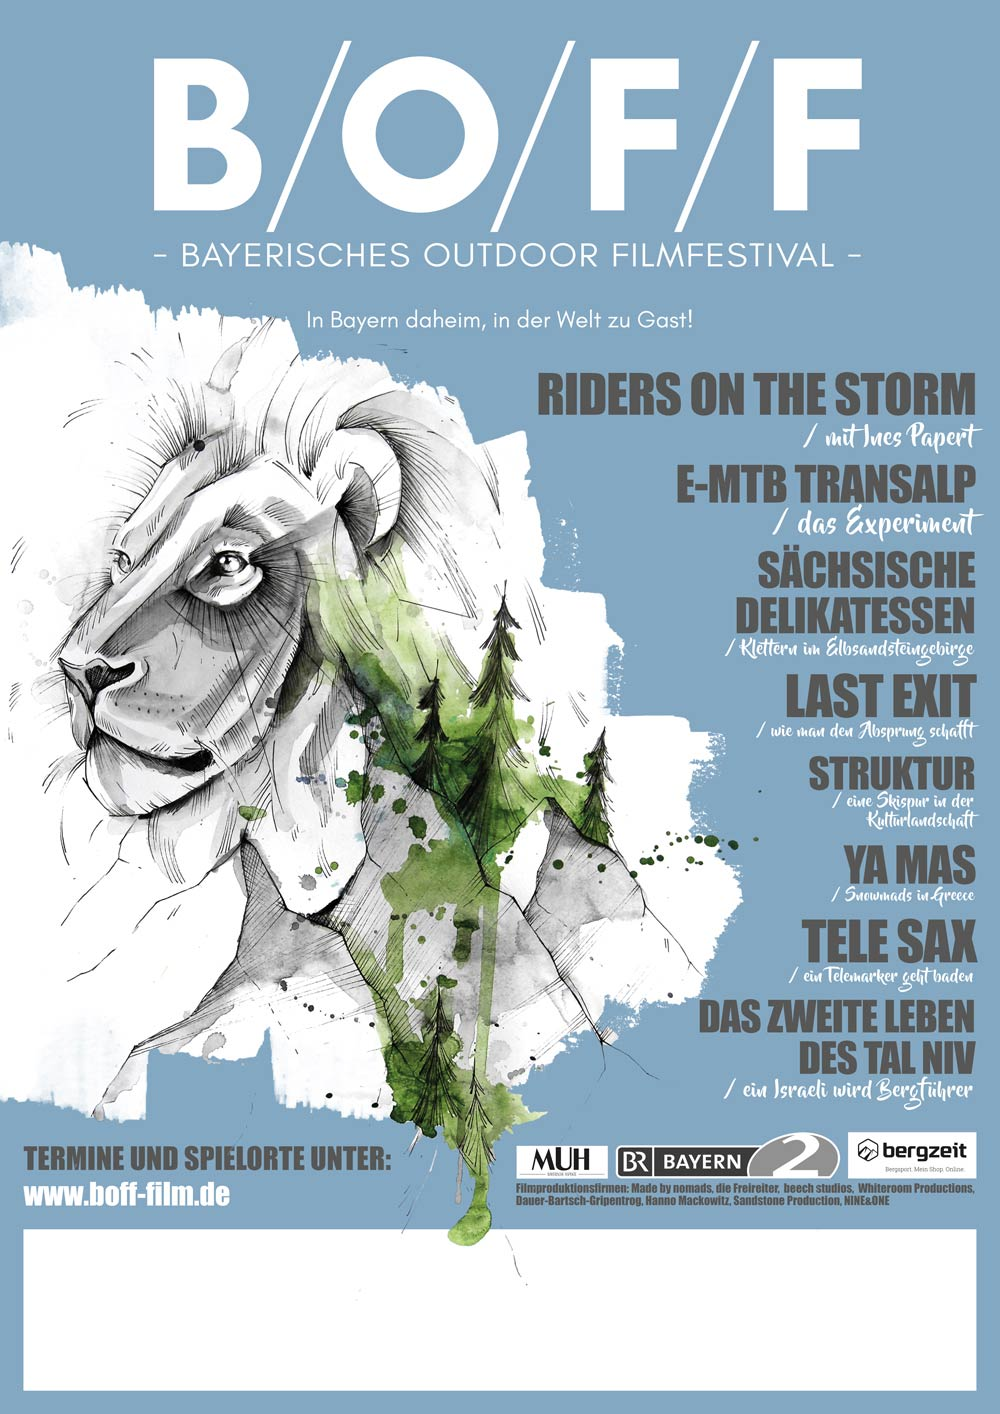 Bayerisches Outdoor Filmfestival 2018 - B/O/F/F - Flyer